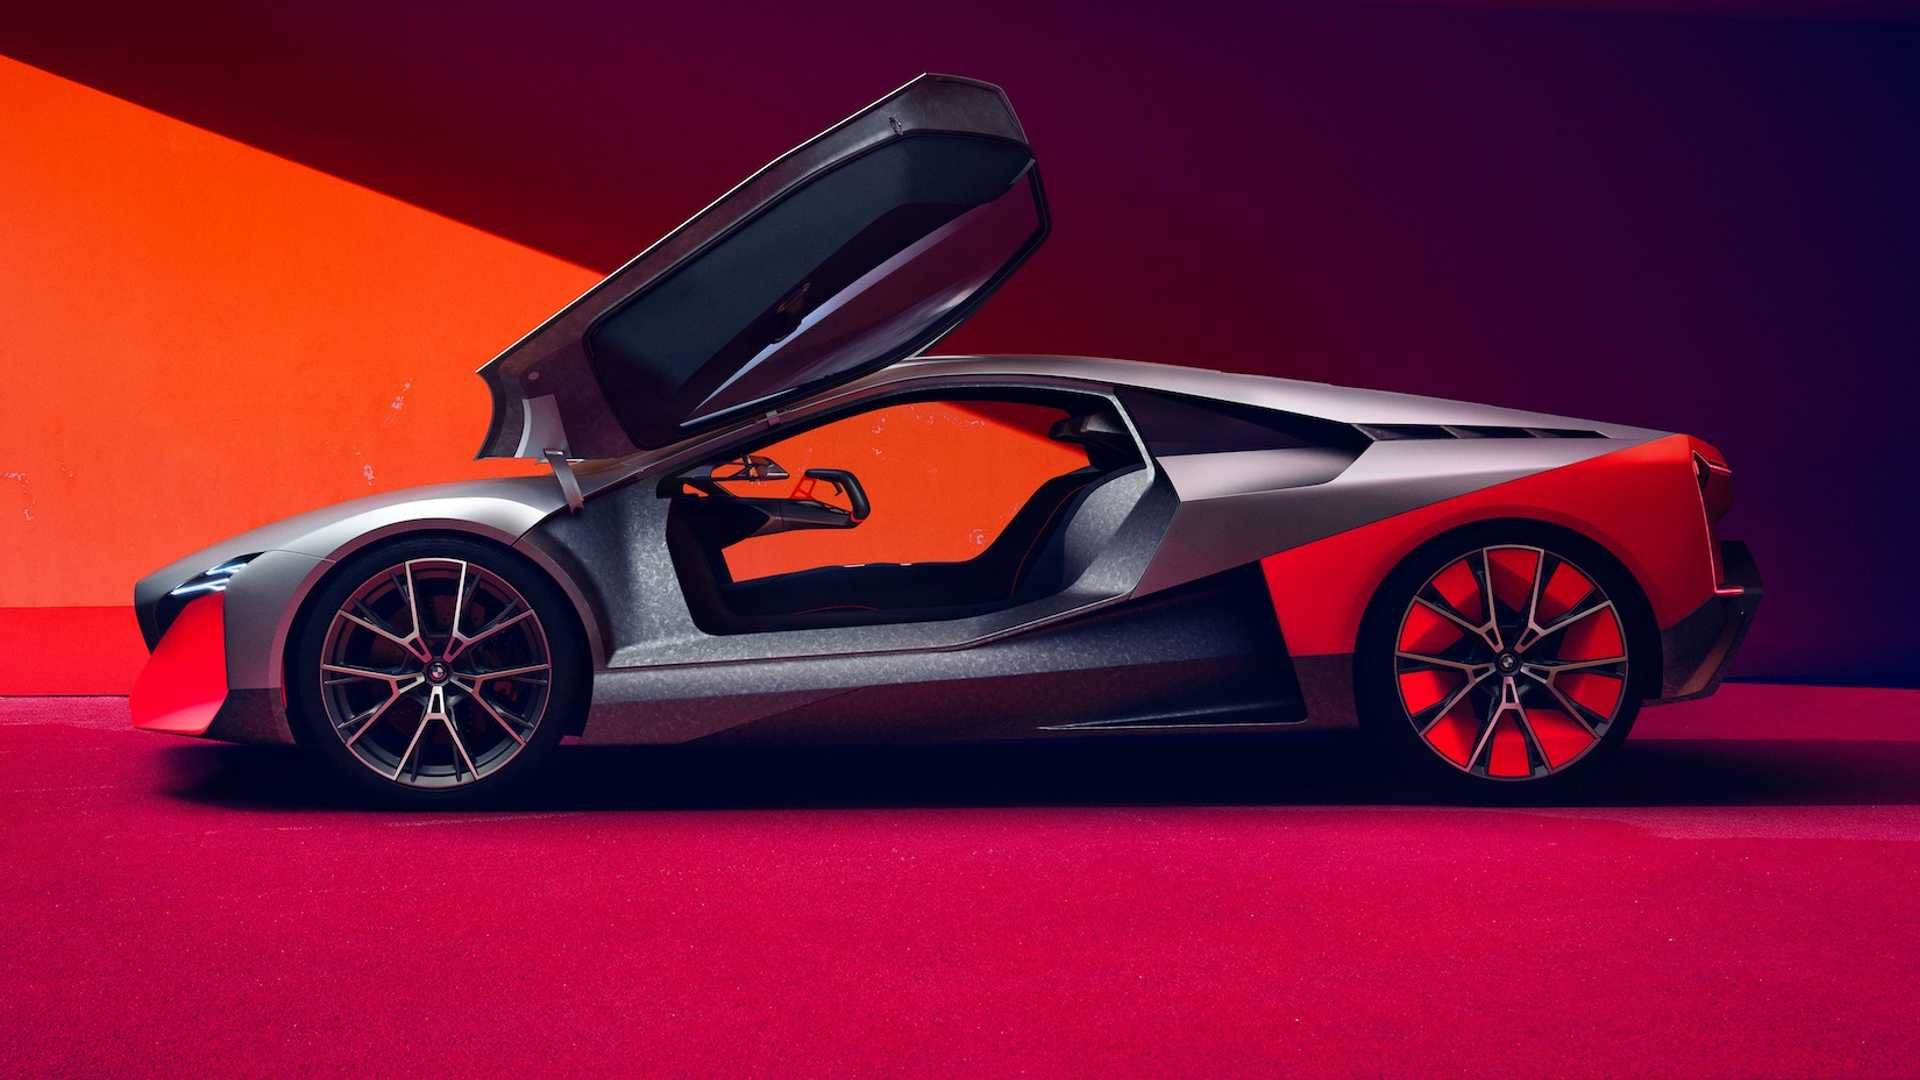 Bmw Vision M Concept Is A Stunning And Futuristic M1 Bmw M1 Bmw Future Car